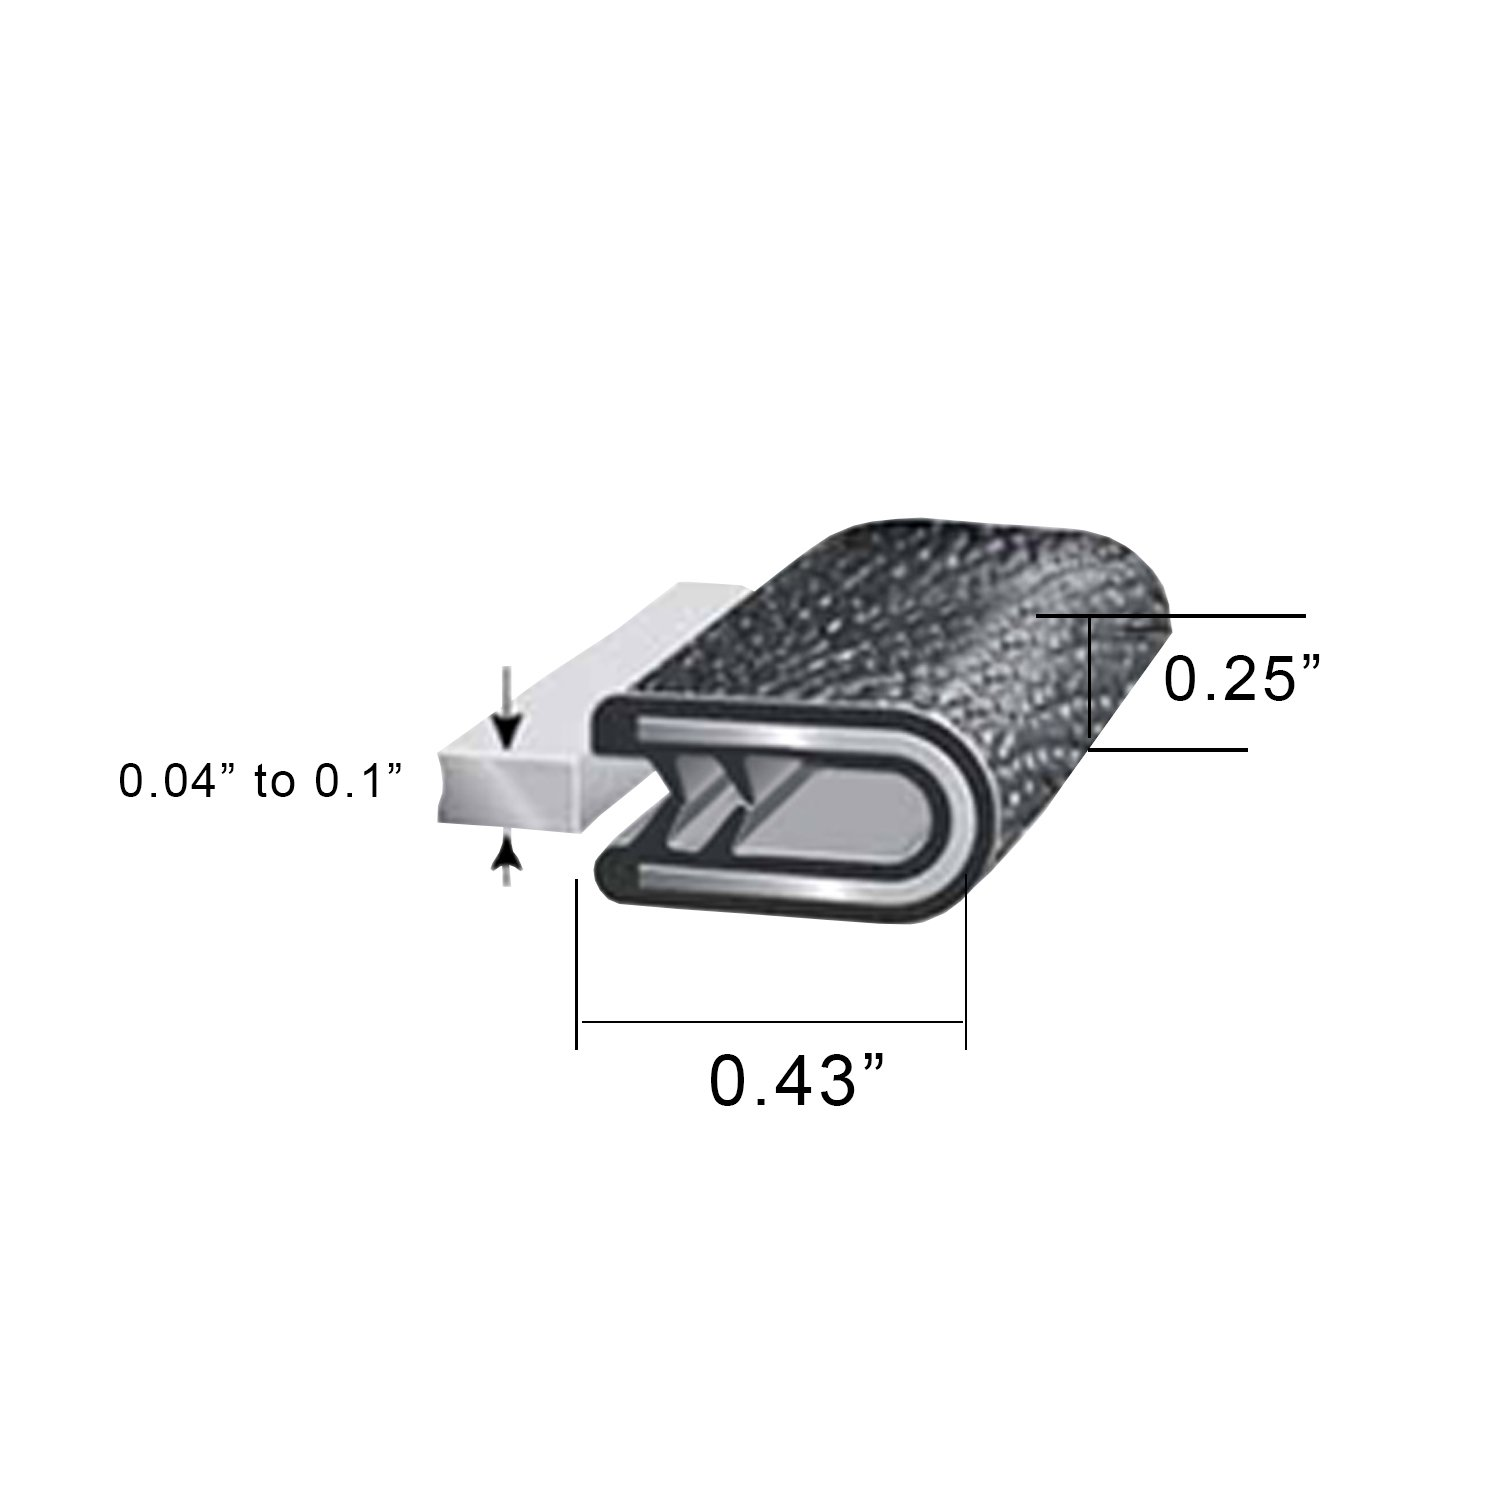 Black Rubber Seal Weather Stripping for Door Window 5//32 to 3//64 Opening 5 Ft